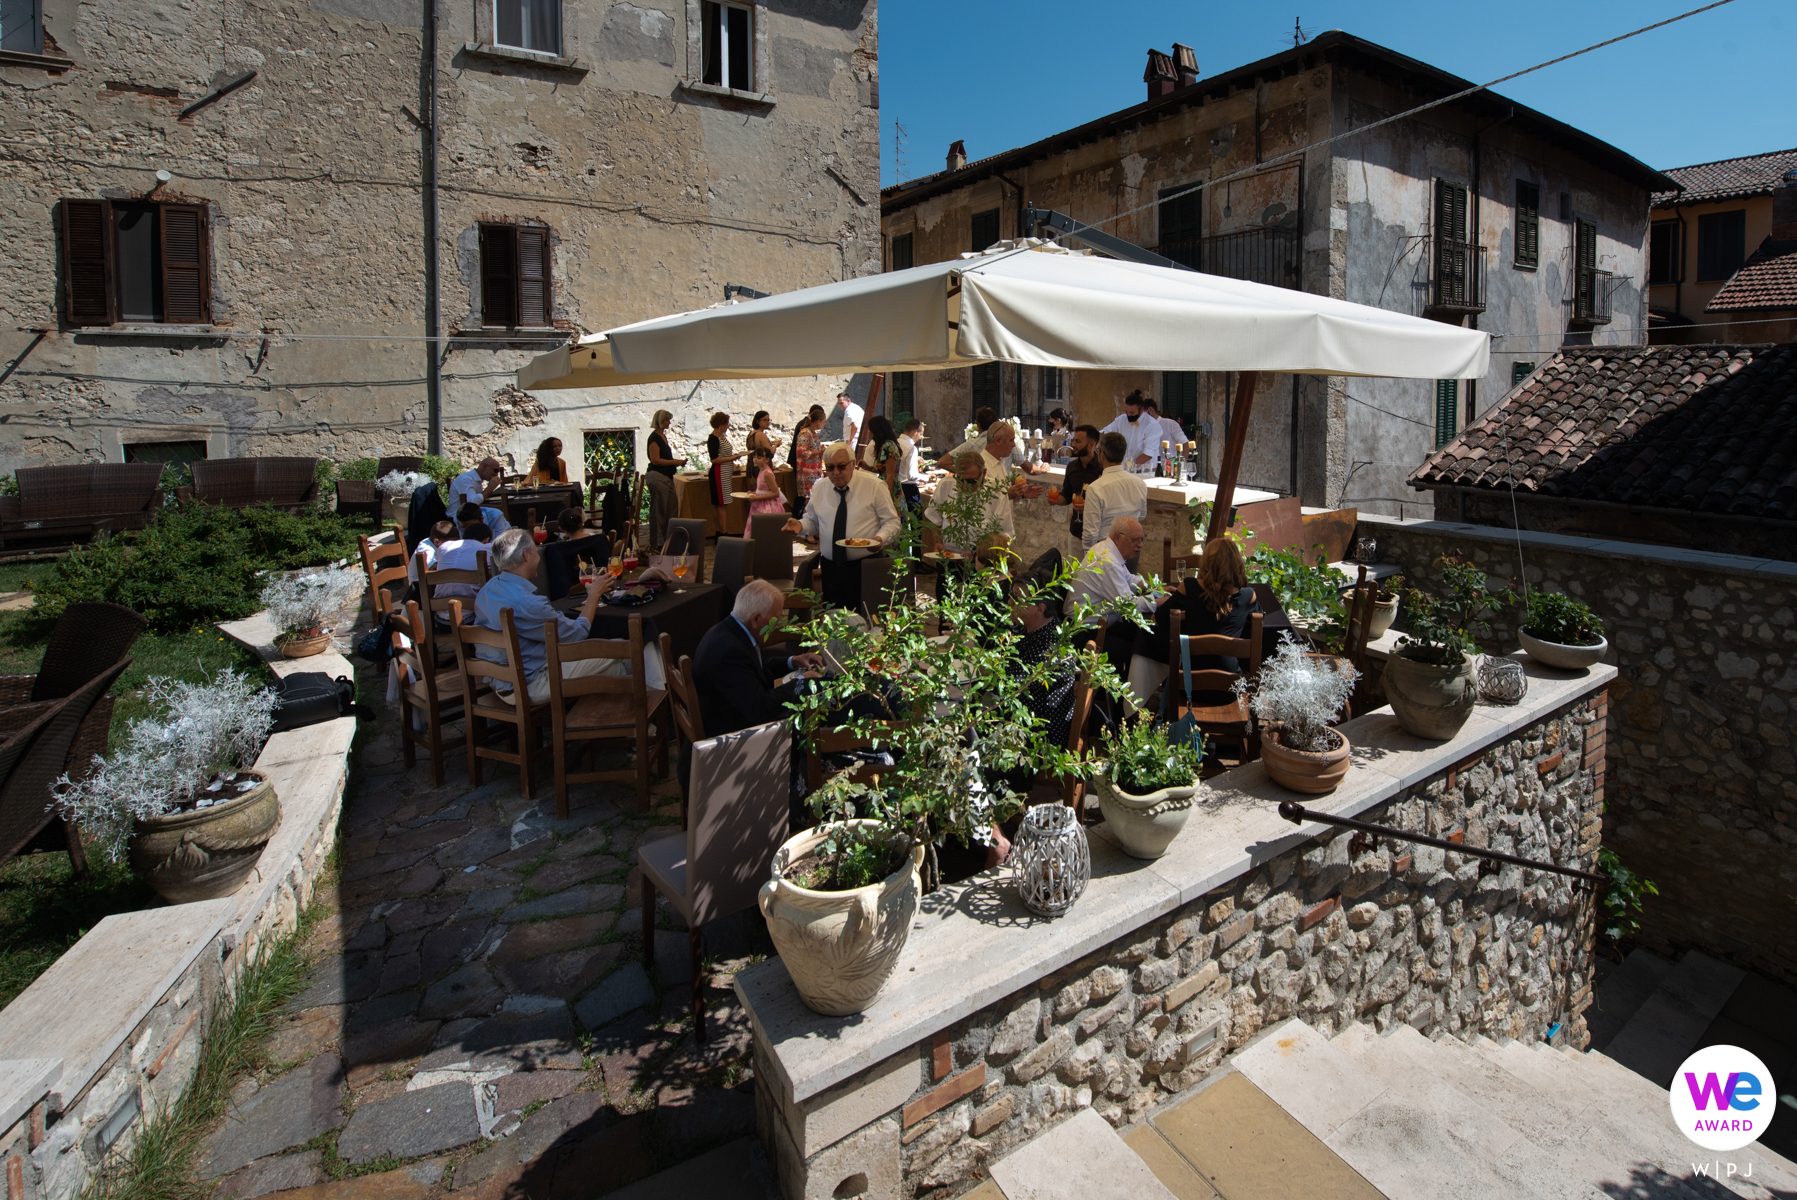 Municipality of Tagliacozzo - GIARDINO RESTA Restaurant Elopement Venue Image | The bride and groom have just opened the reception and meet with their guests on the terrace